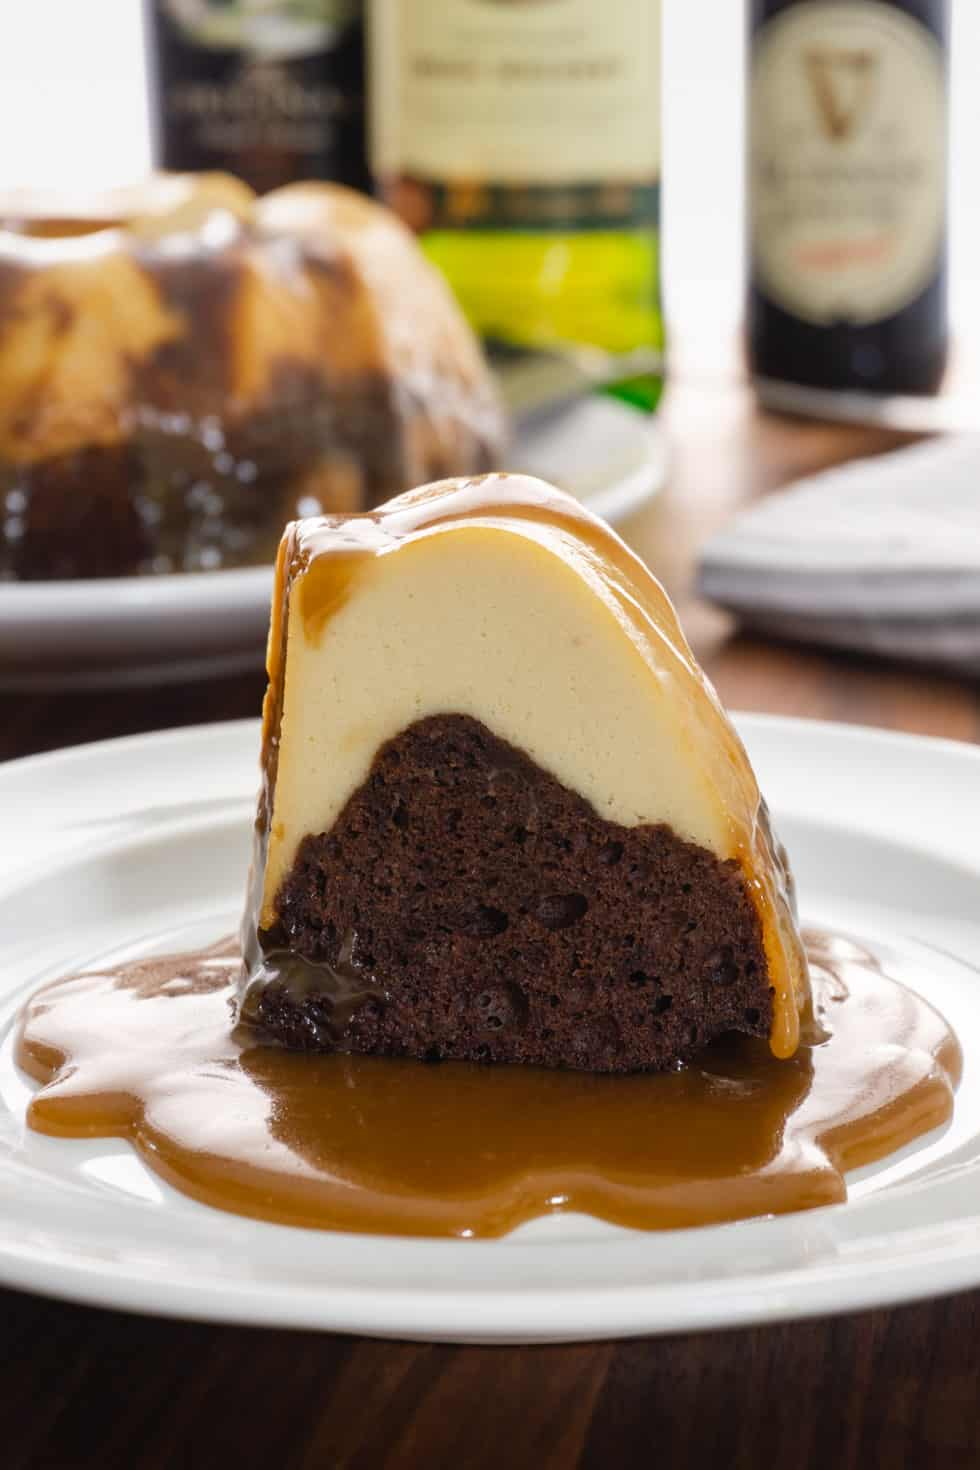 Instant Pot Irish car bomb chocoflan on white plate